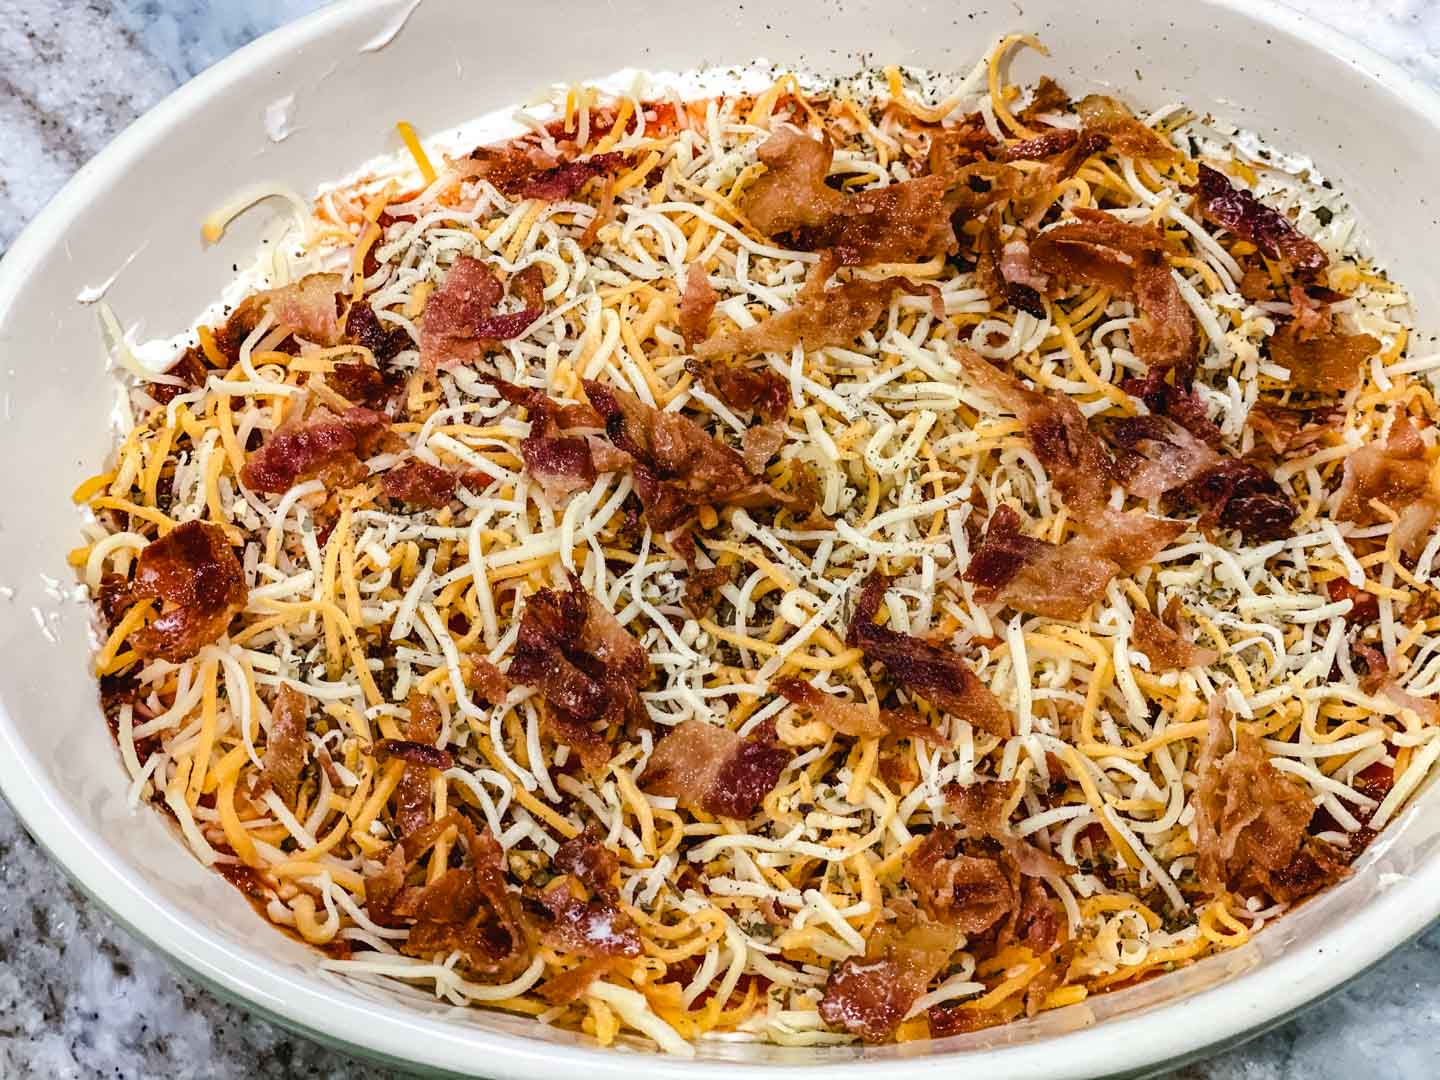 Shredded cheese with bacon in a white bowl on a counter.